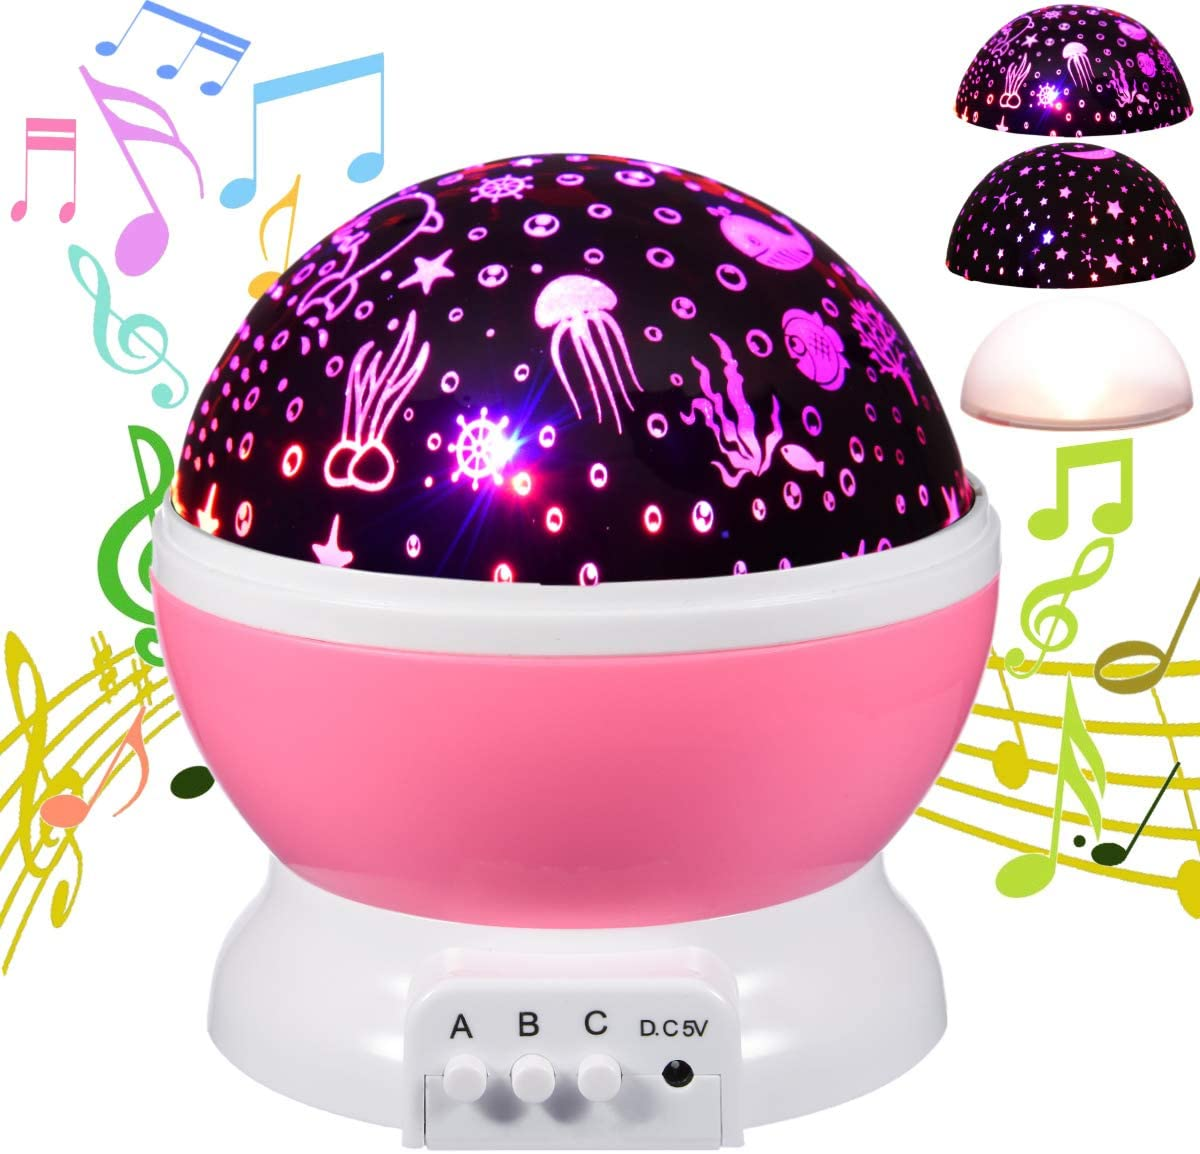 HAMPAY Baby Starry Ocean Music Night Light Projector Lullaby for Kids